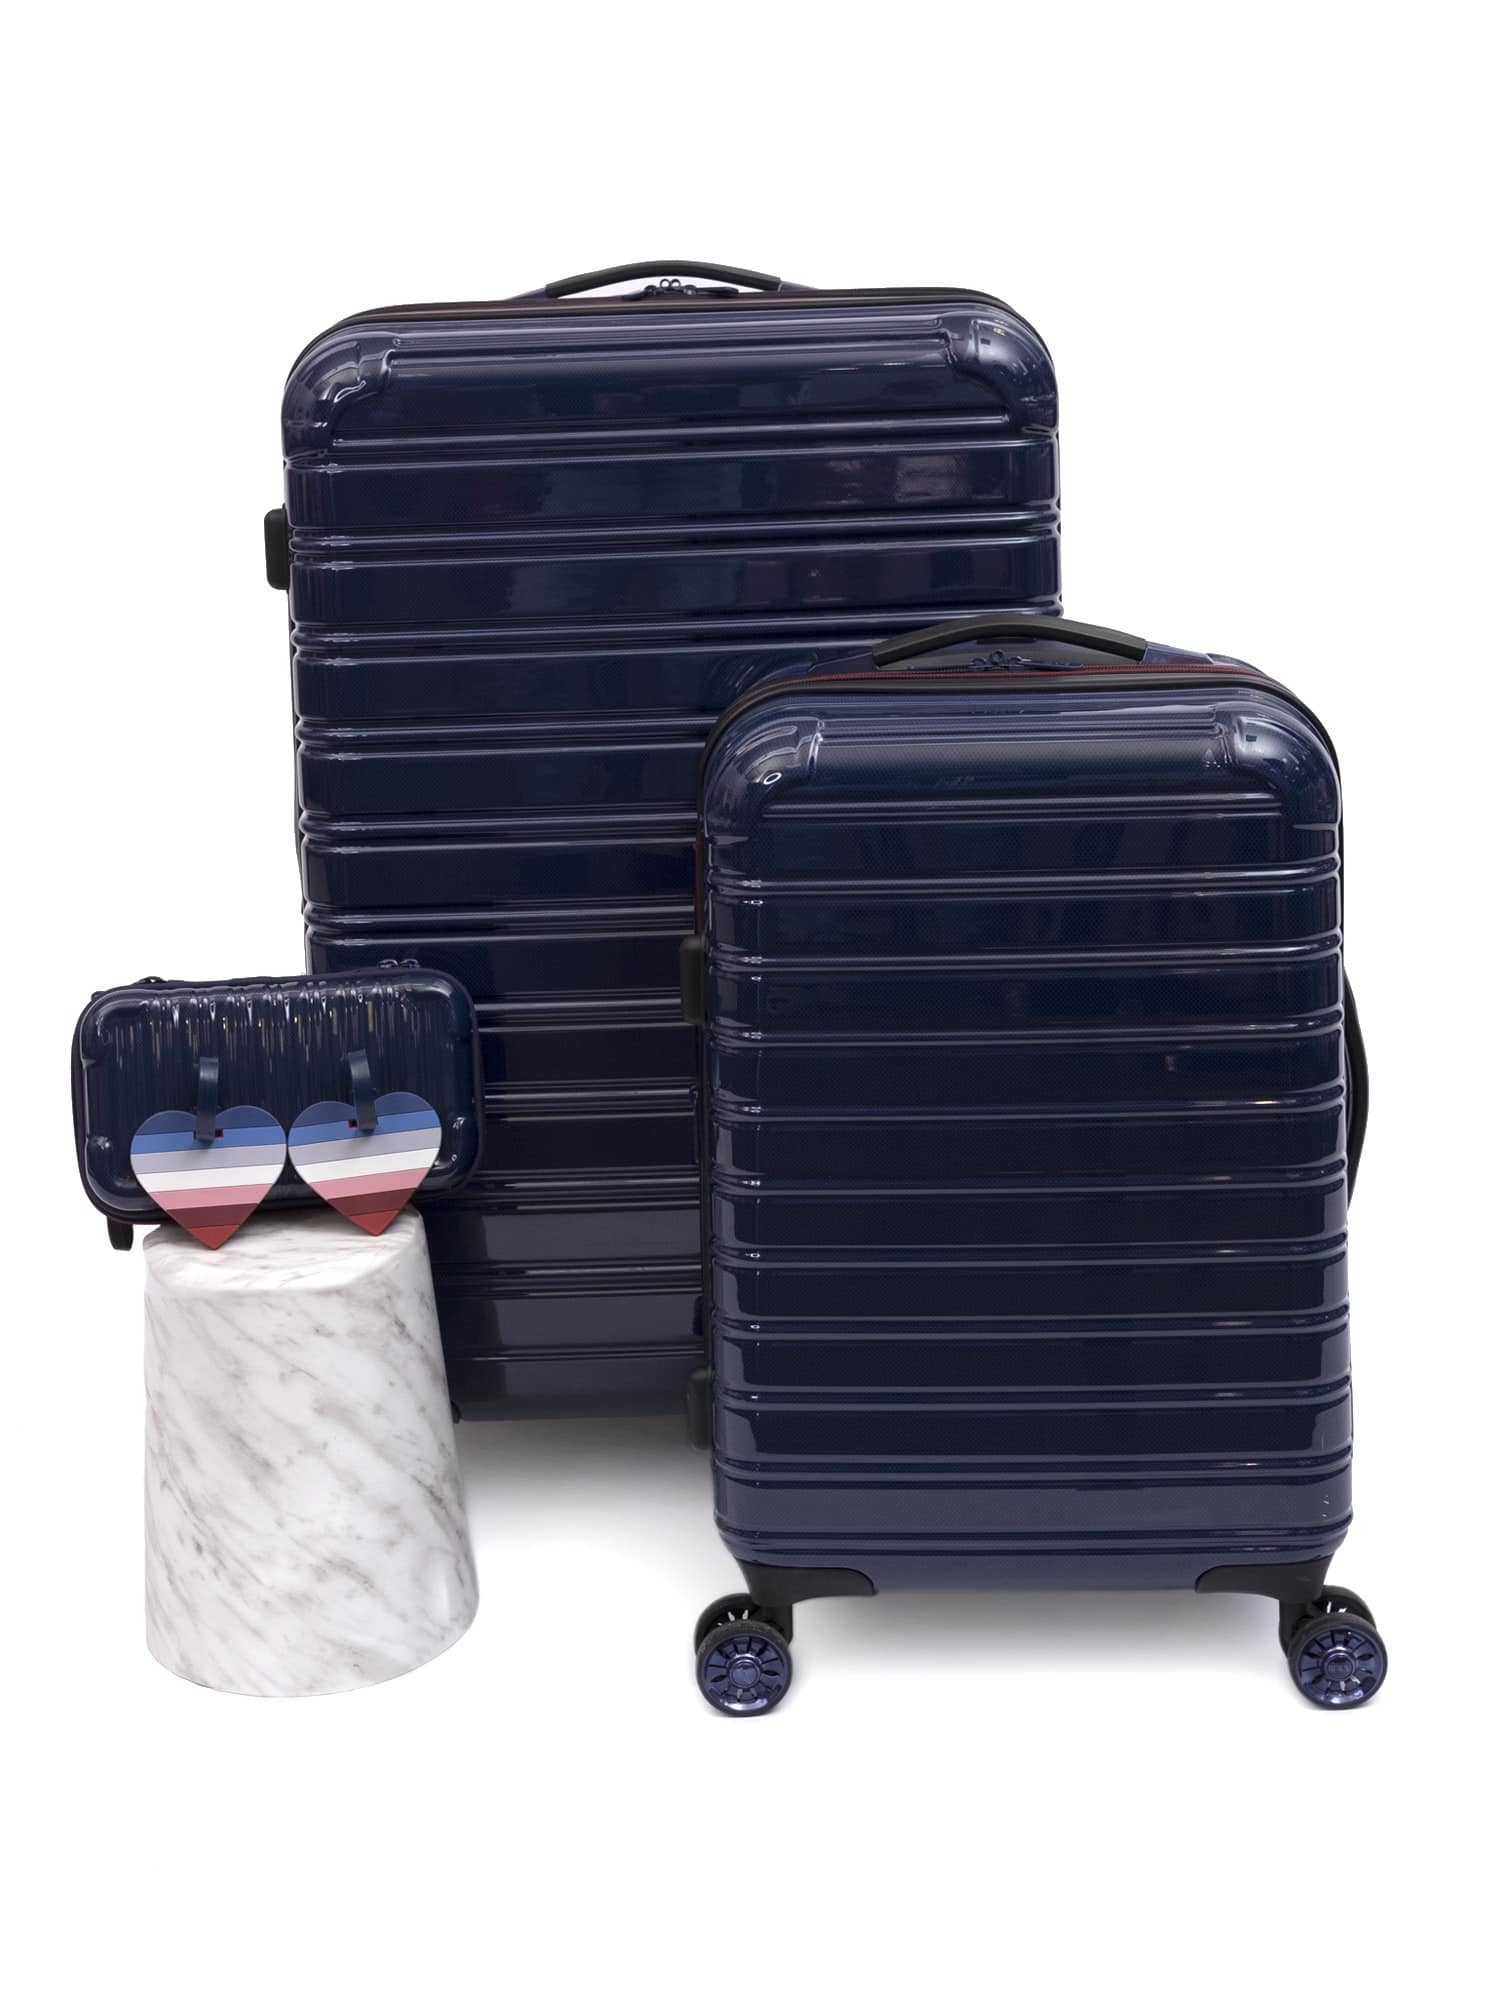 3-Piece Set - EV1 x iFLY Hardside Fibertech Luggage with Heart-Shaped Luggage Tags $129.99 - Walmart +Free Ship